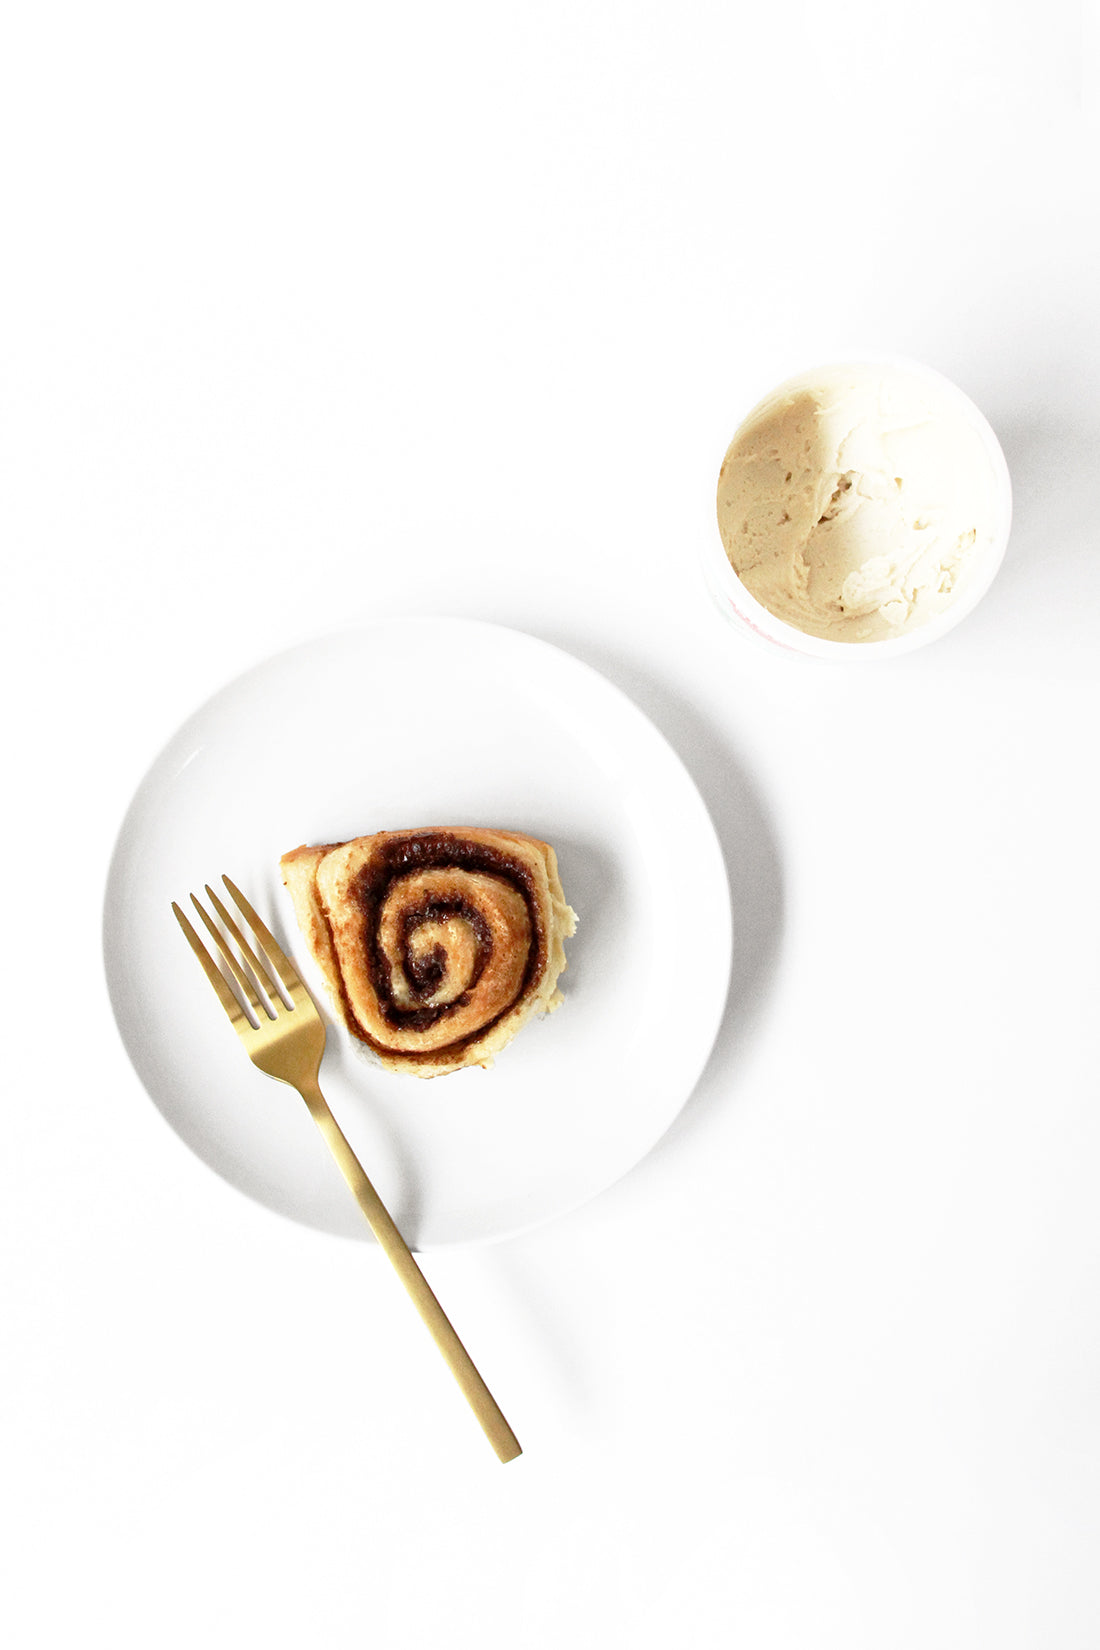 Image from above of a plate with Miss Jones Baking Co Cake Mix Cinnamon Roll next to a container of frosting